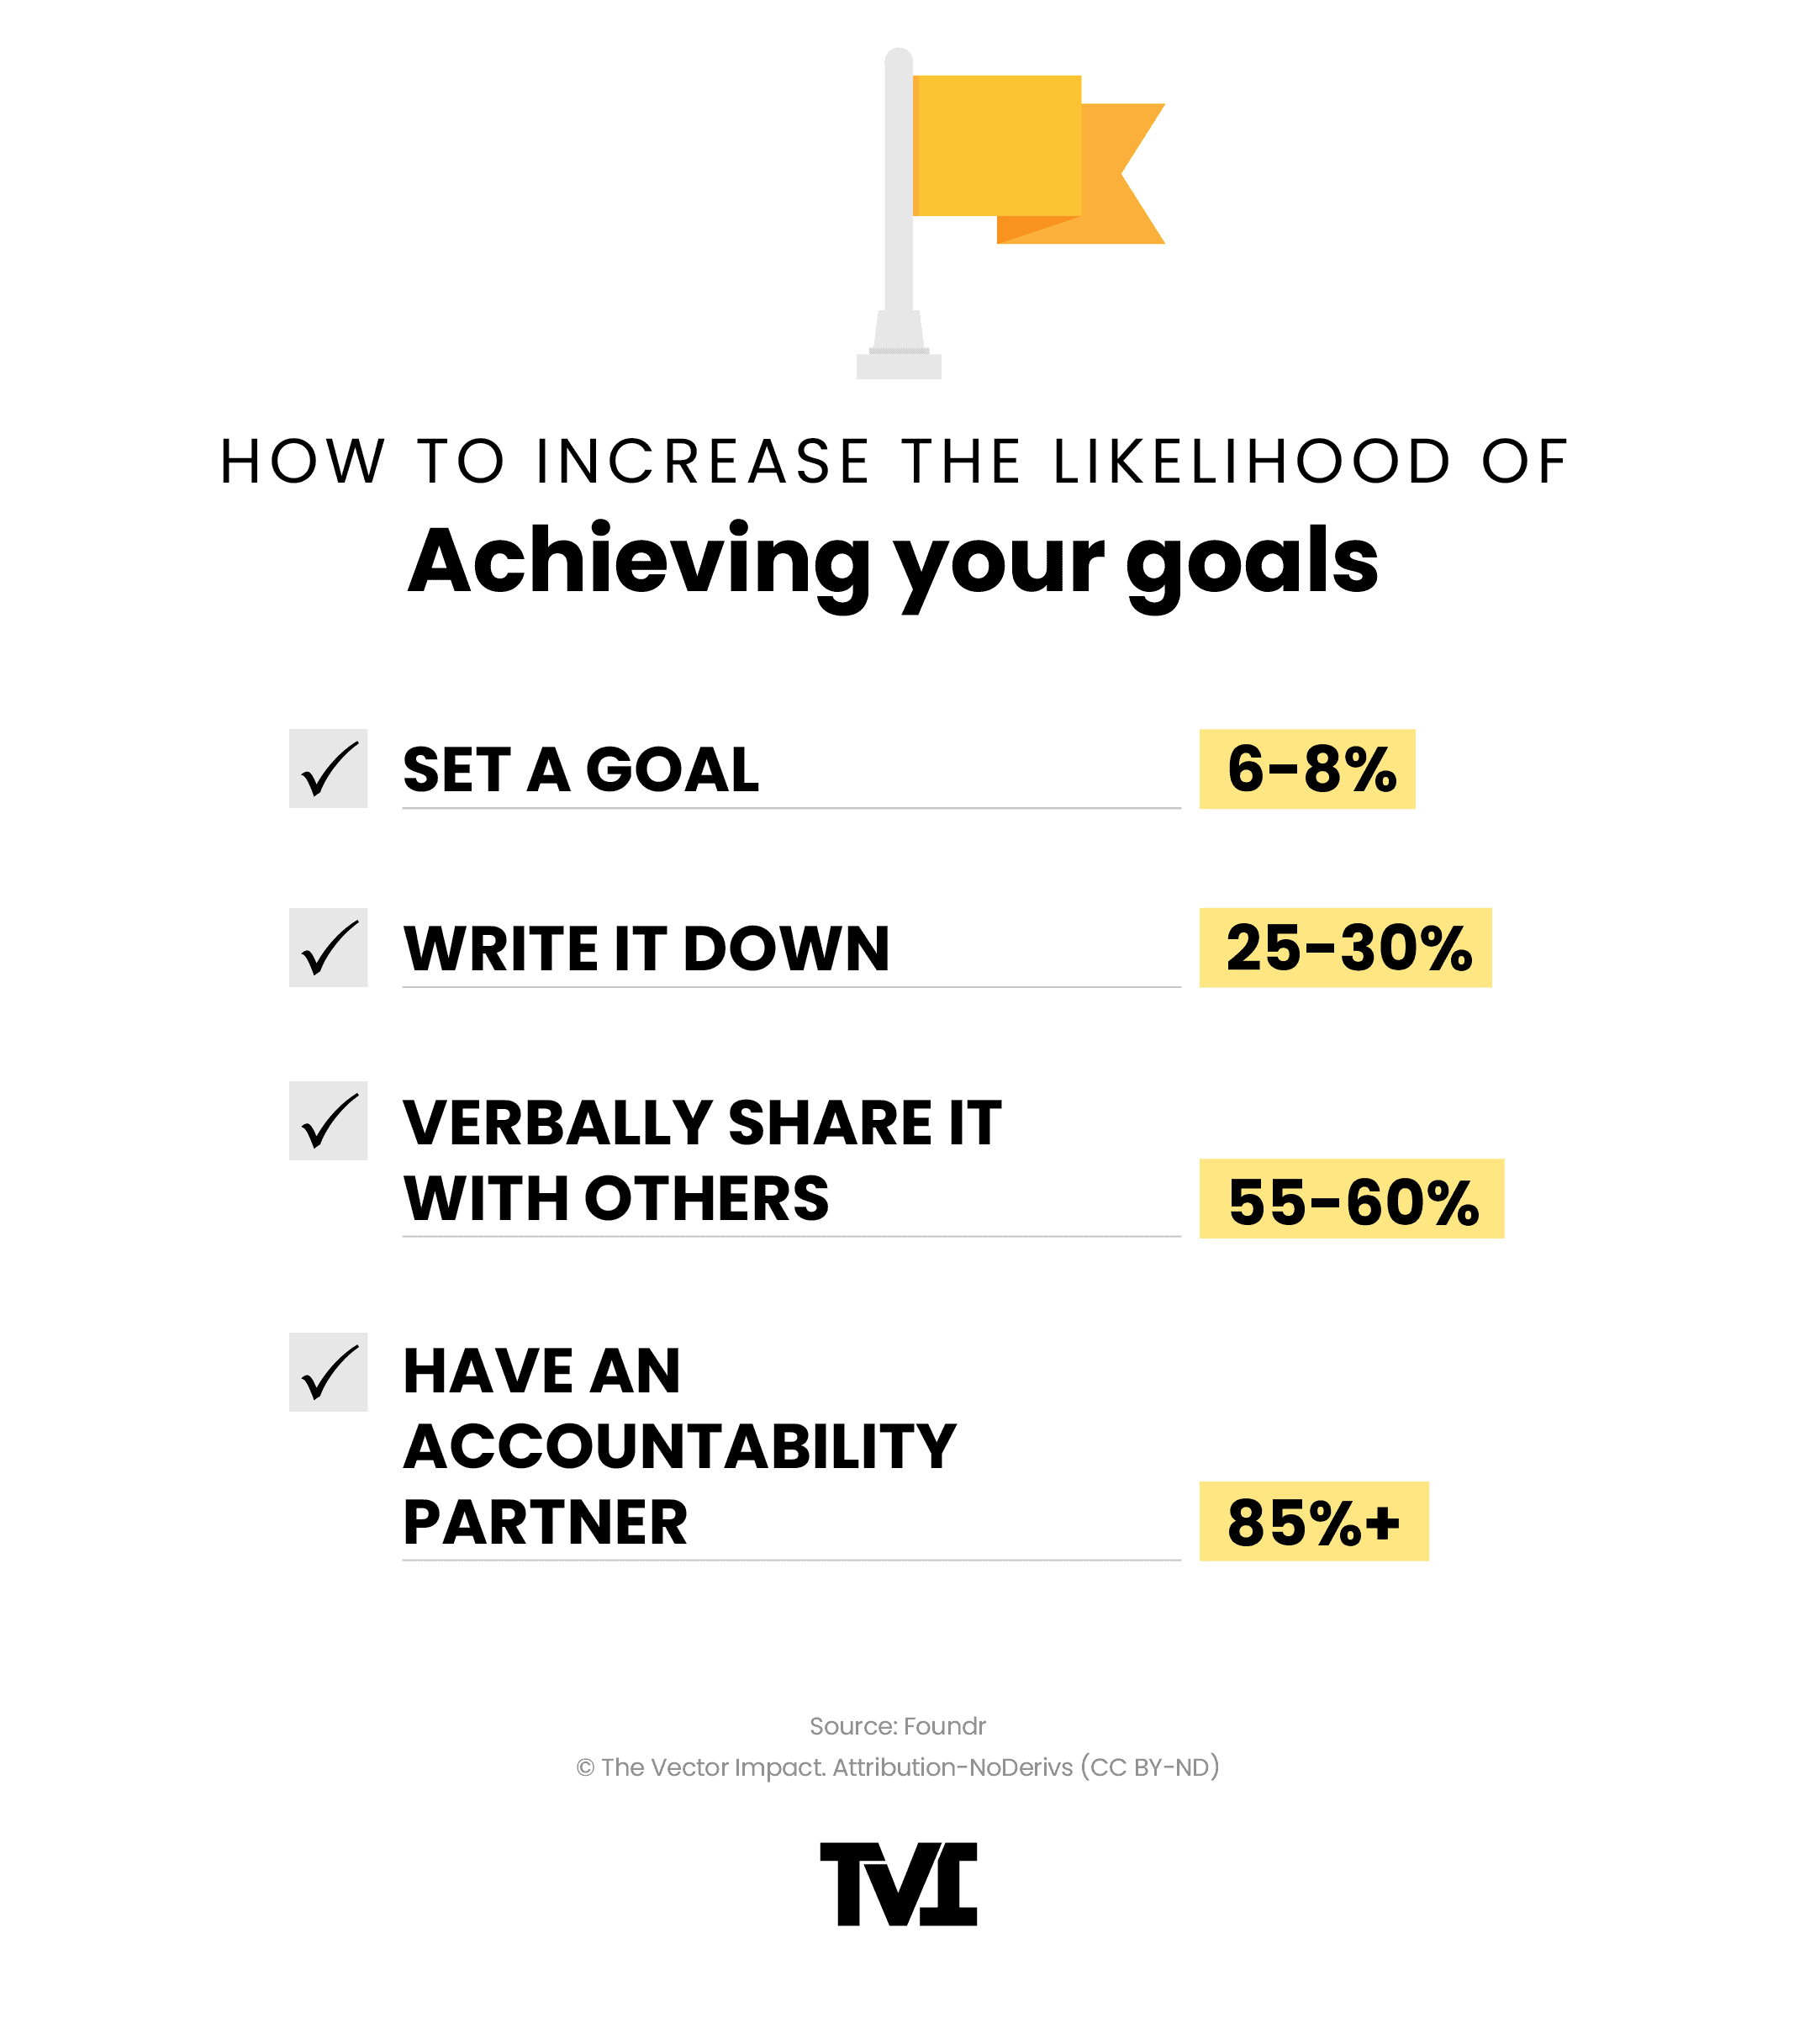 Graphic: How to increase the likelihood of achieving your goals